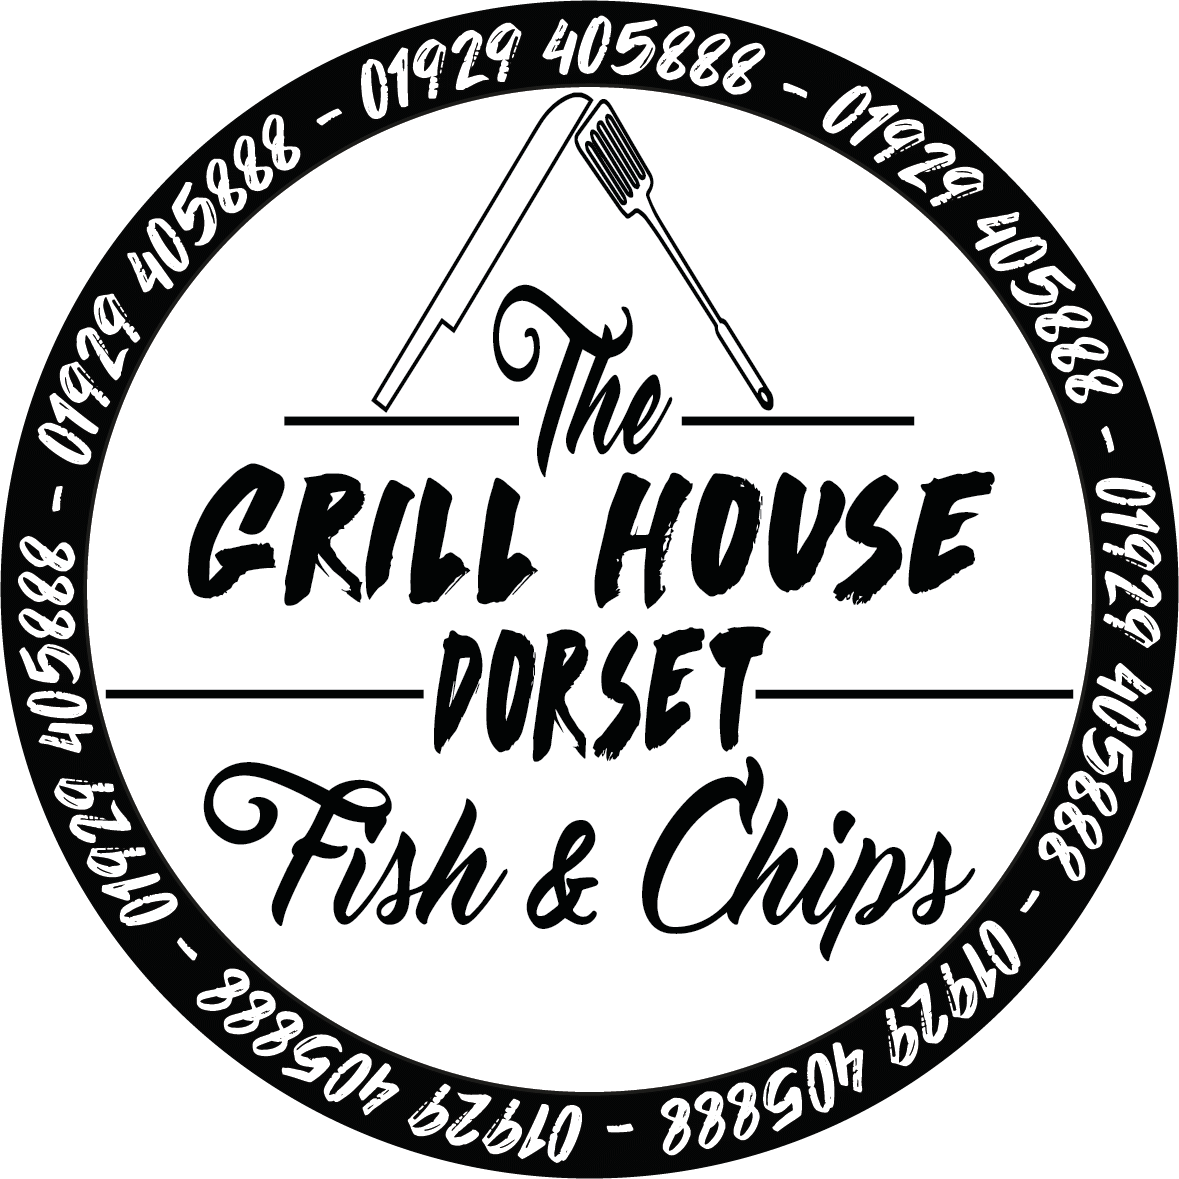 Grill-house-round-logo